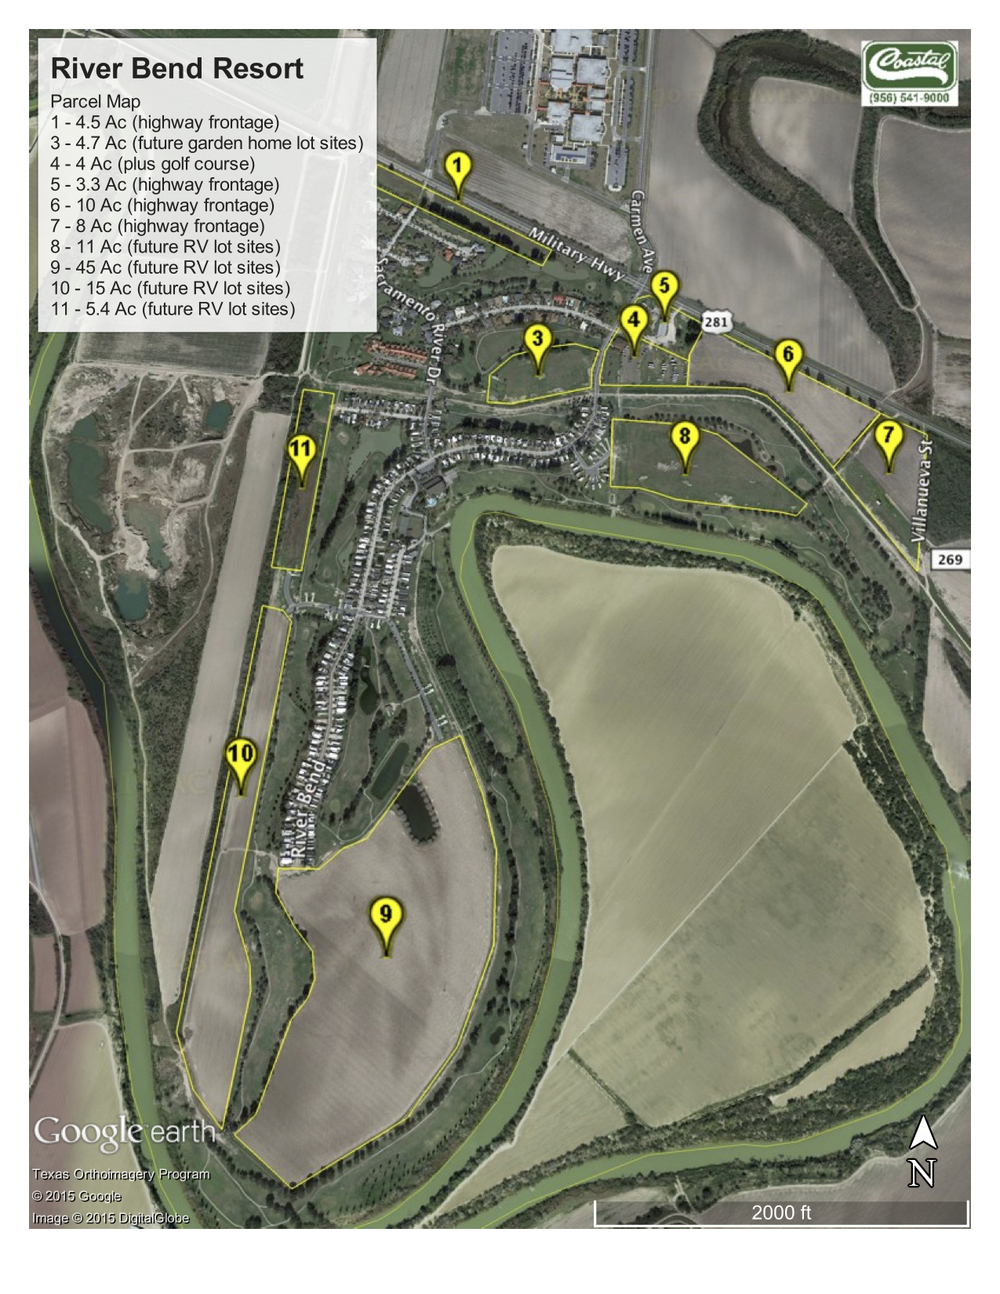 Highlighted in Yellow are the Investment Opportunity Parcels   28 acres (approx.) of Commercial Parcels with frontage on Hwy 281.  65 acres (approx.) of Commercial Parcels to the left and rear of the property (south of the levy)  15 acres (approx.) of Future Phase Residential Development available just behind the commercial parcels